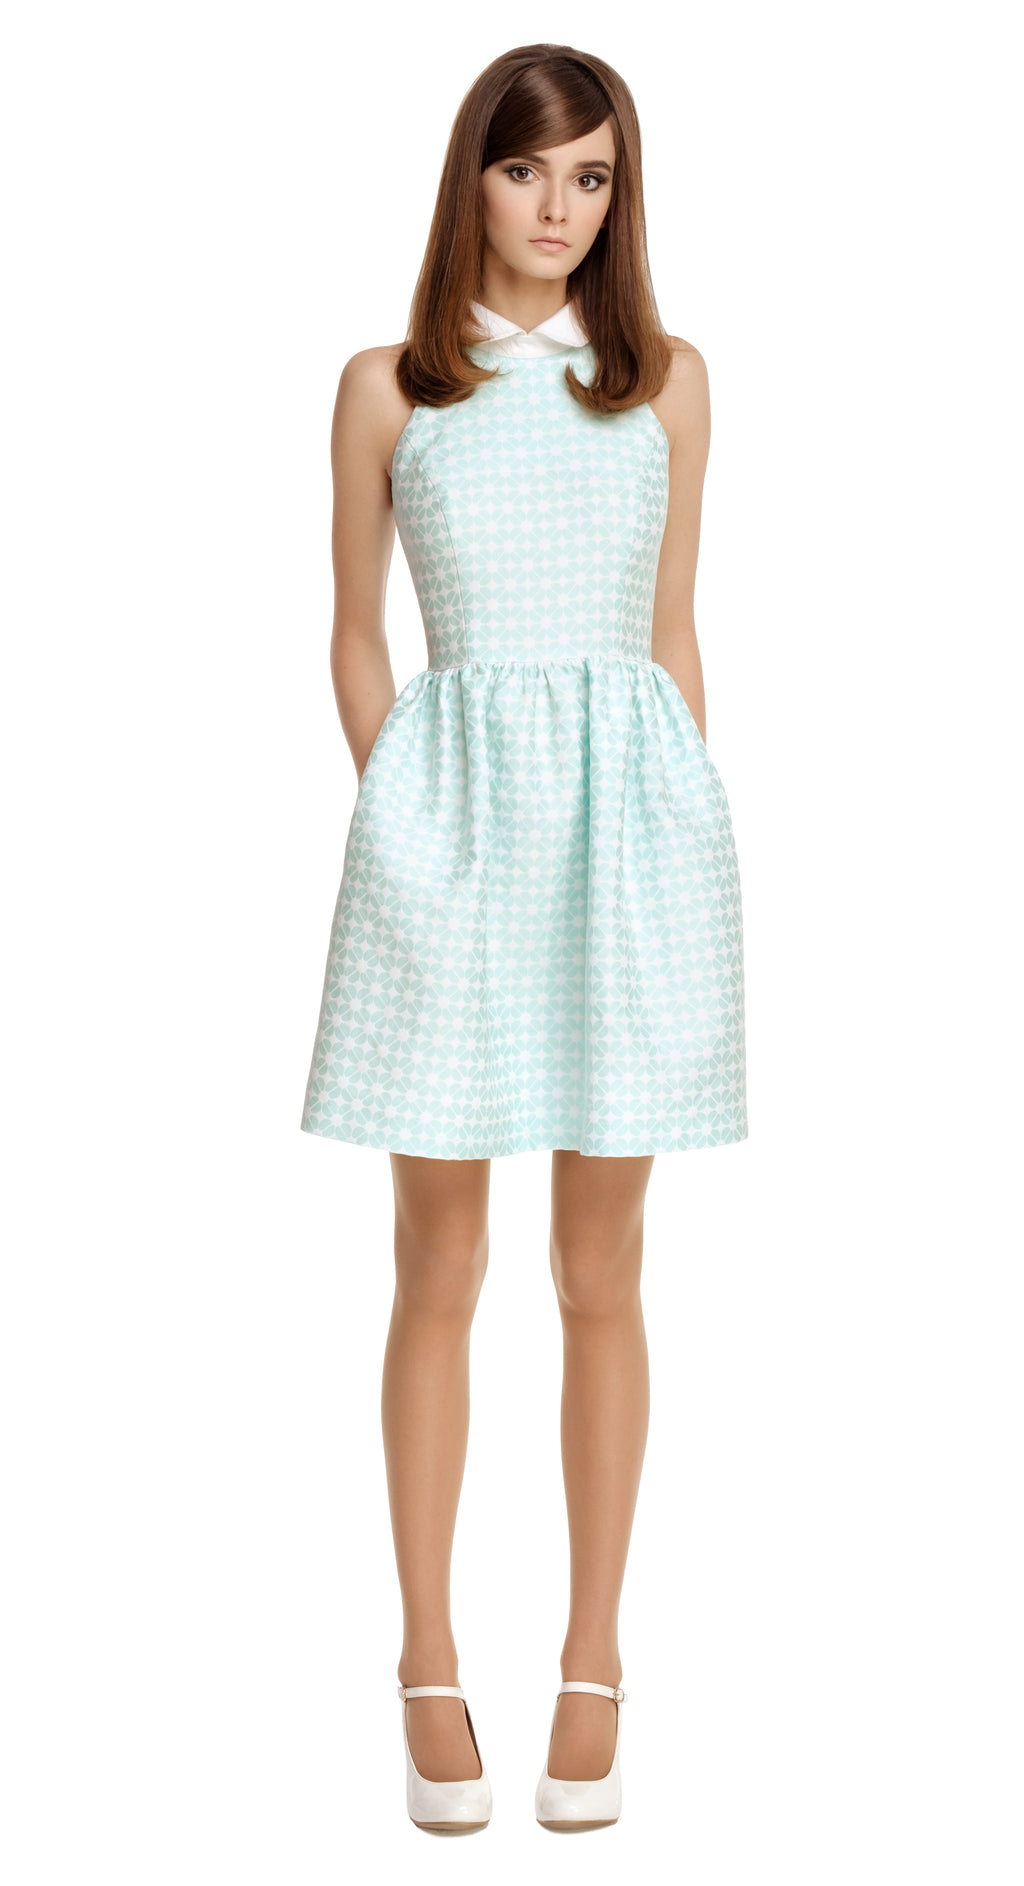 GREEN GEOMETRIC PATTERN DRESS WITH WHITE COLLAR